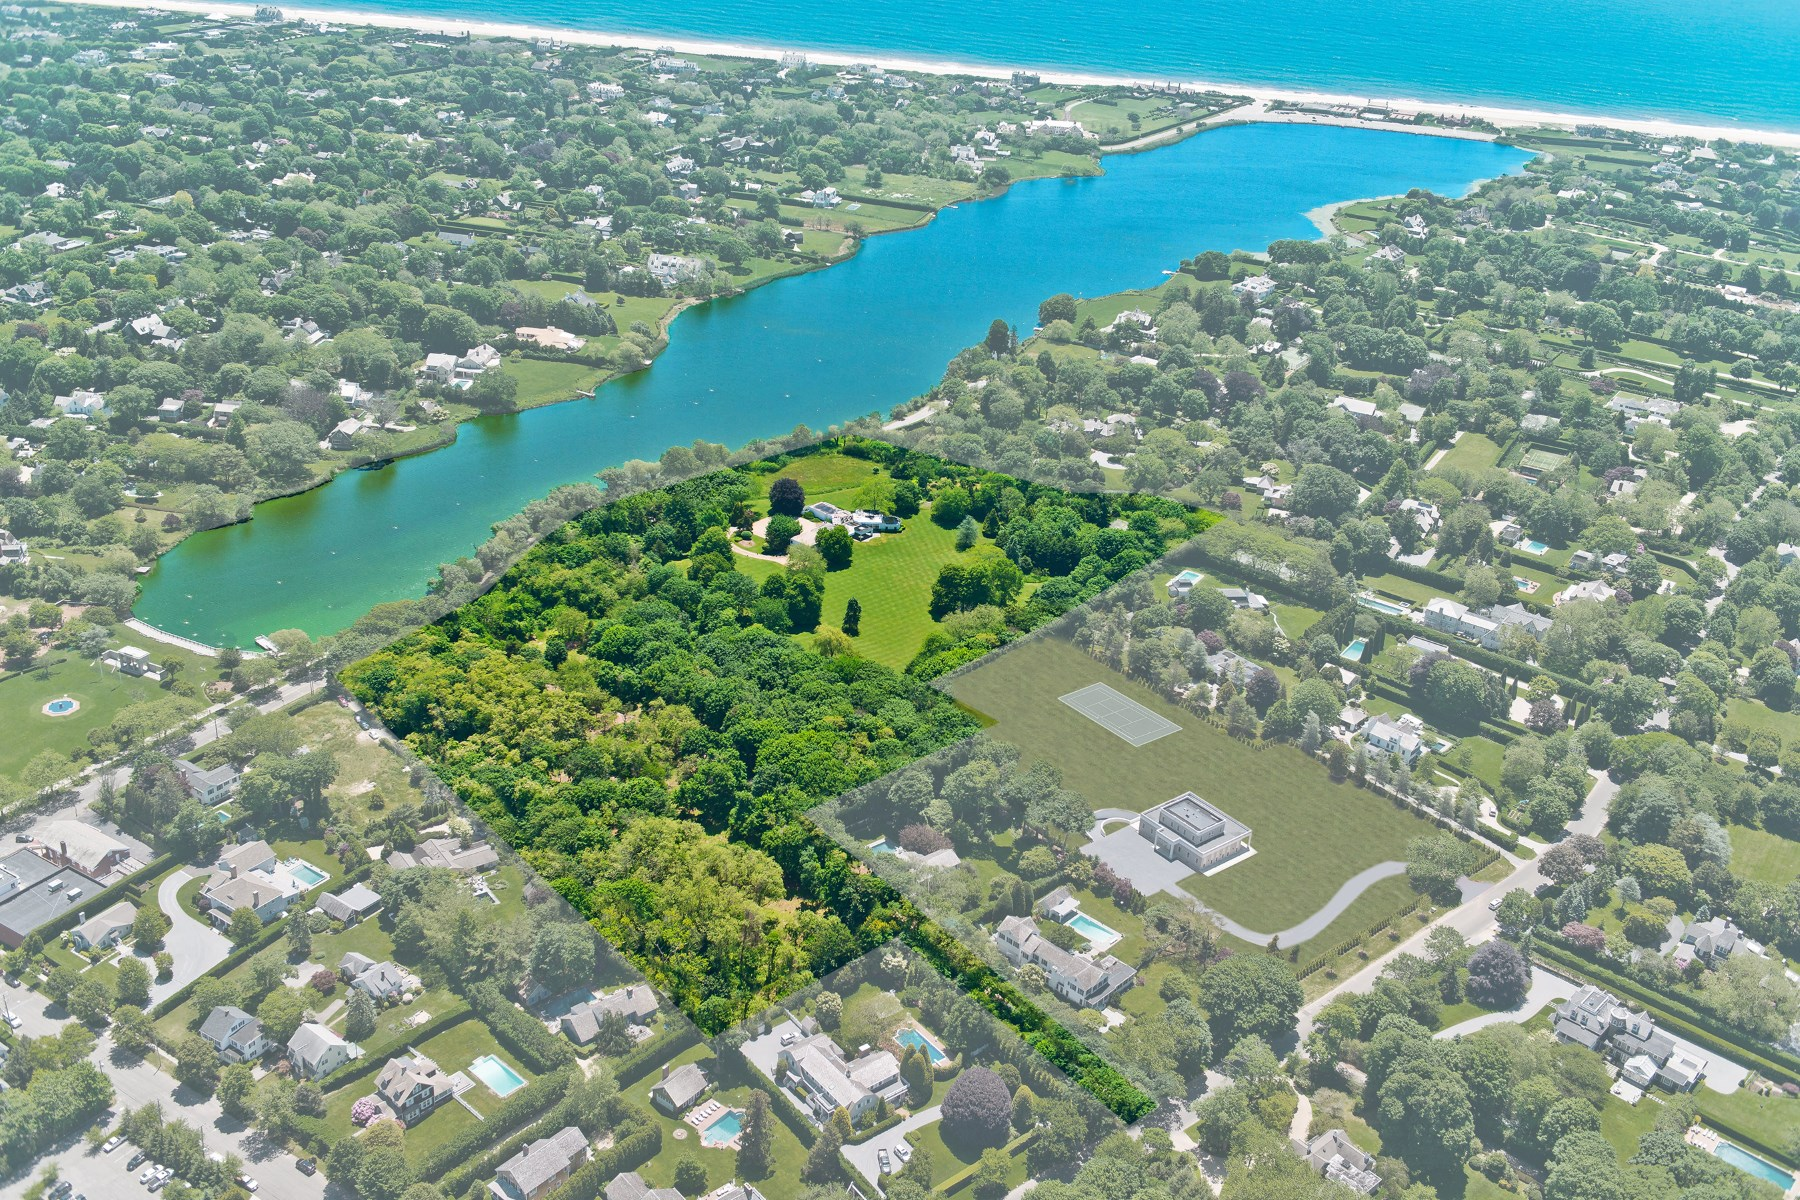 Moradia para Venda às Overlooking Lake Agawam 111, 137, 153 Pond Lane & 52 First Neck Lane 4 properties combined, Southampton Estate Section, Southampton, Nova York, 11968 Estados Unidos